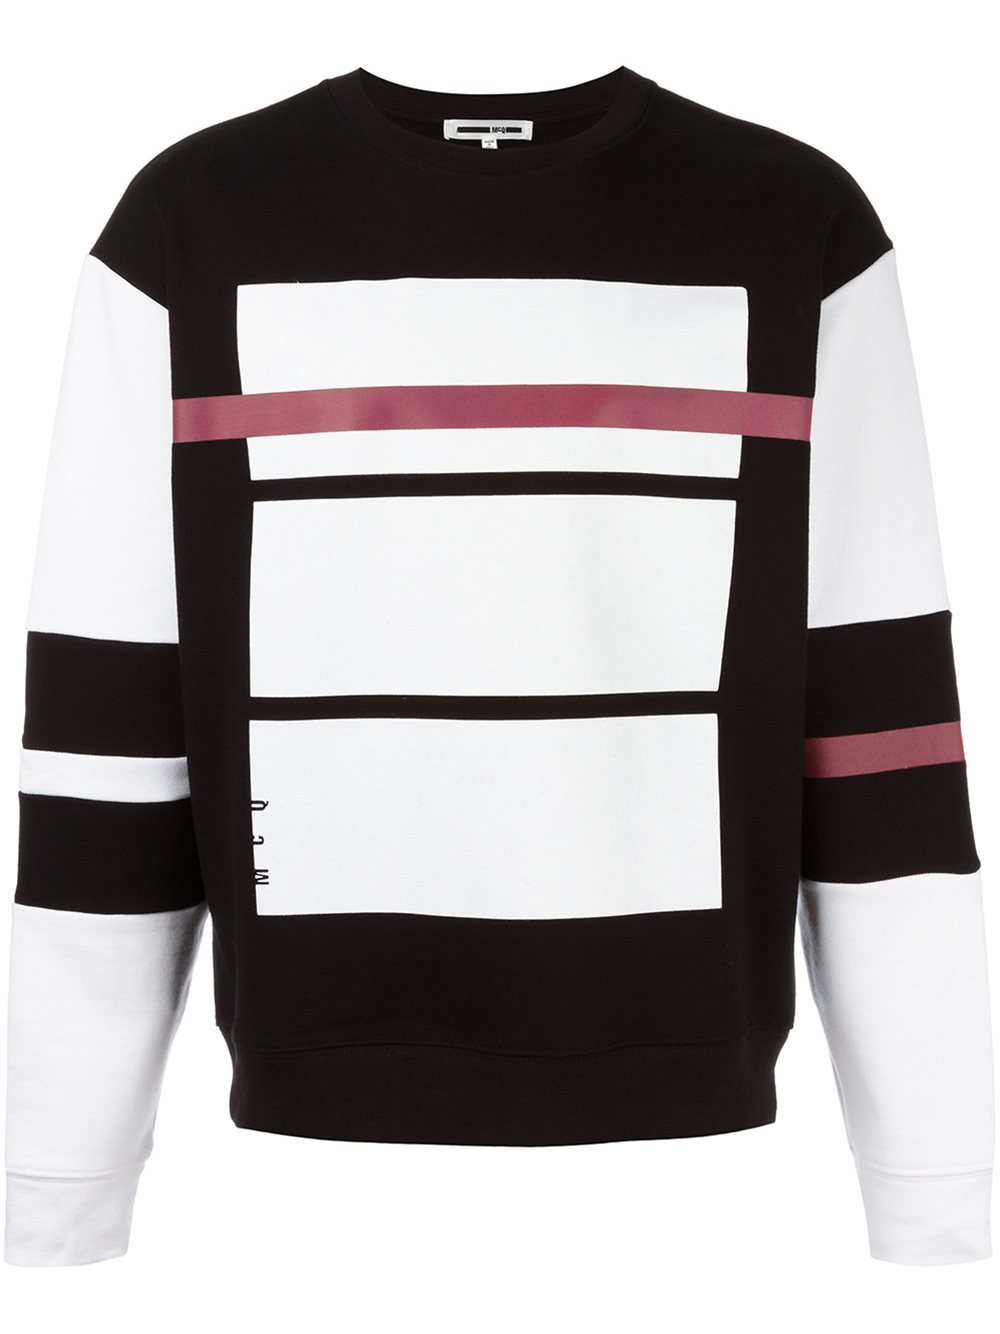 Mcq alexander mcqueen red line print sweatshirt in black for Red line printing